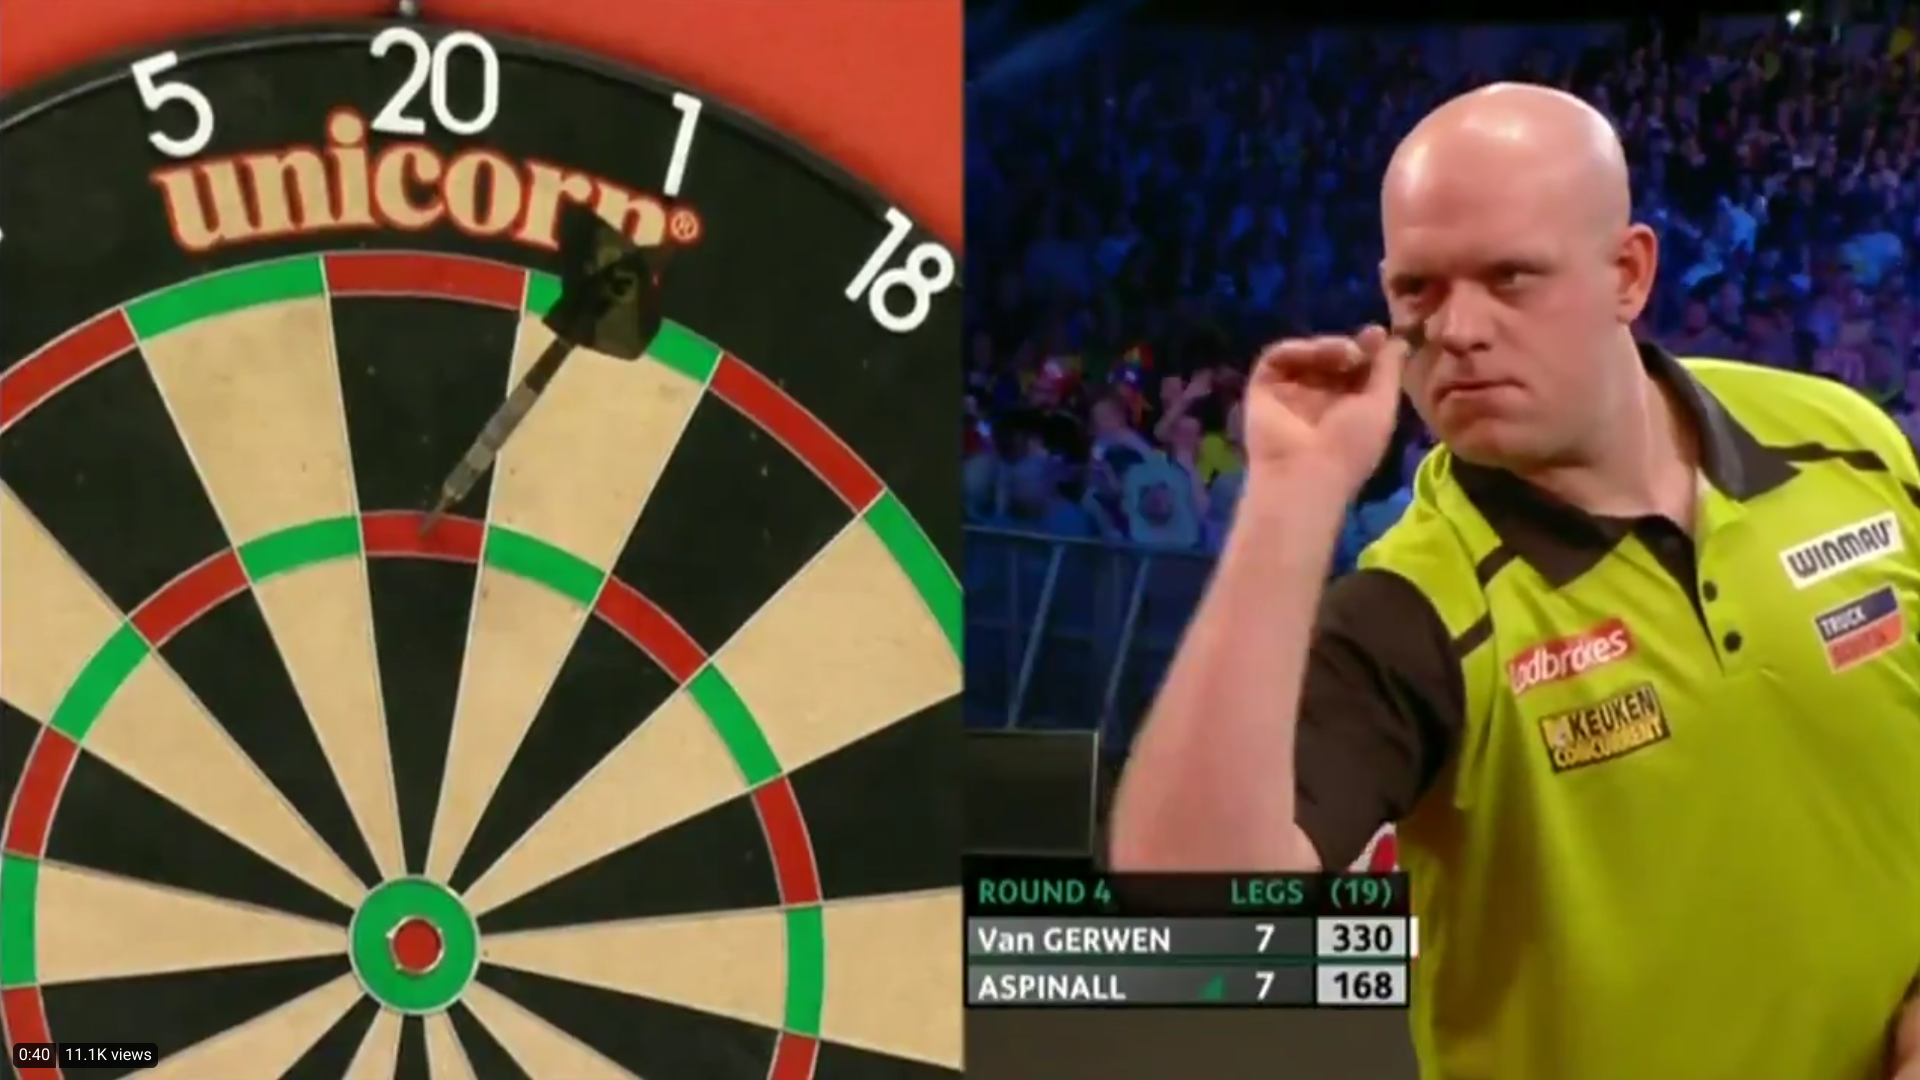 VIDEO: Van Gerwen Hits 6 Perfect Darts From 330 Against Aspinall